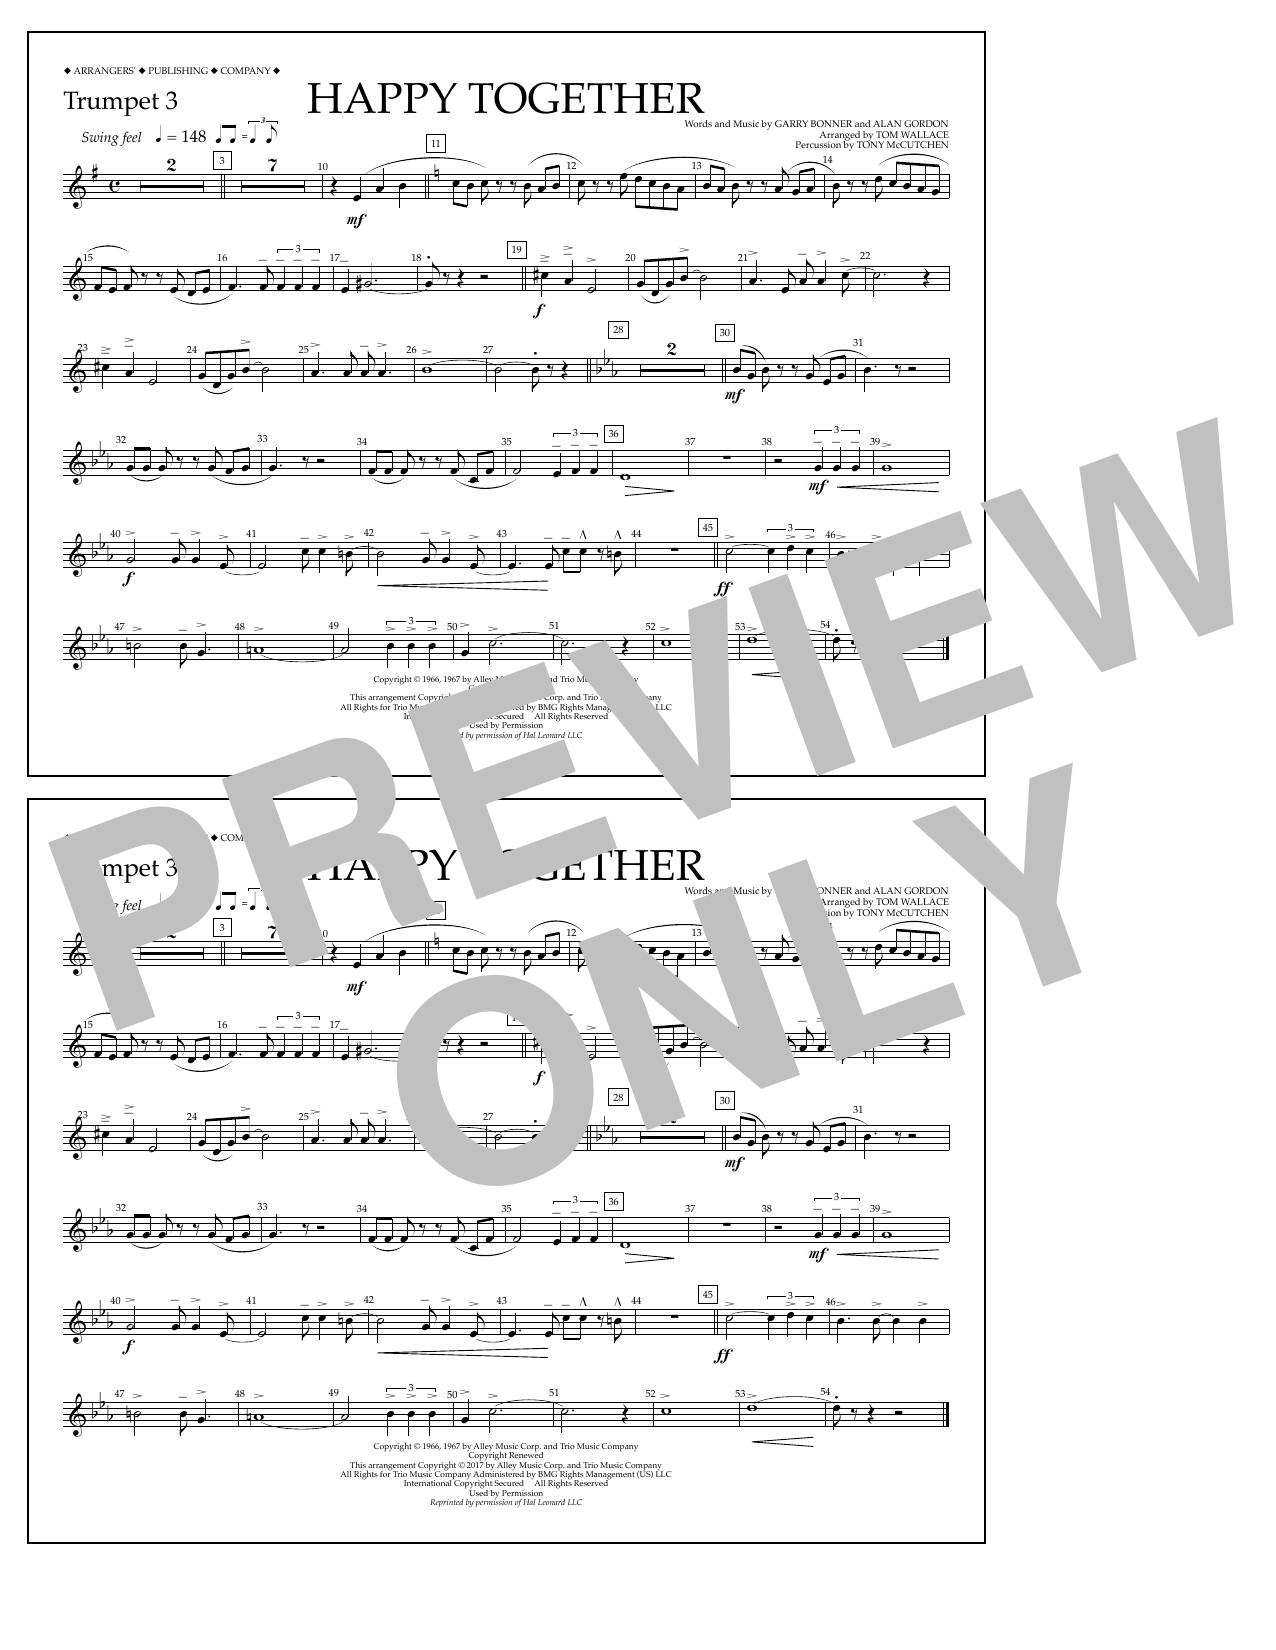 Happy Together - Trumpet 3 Sheet Music